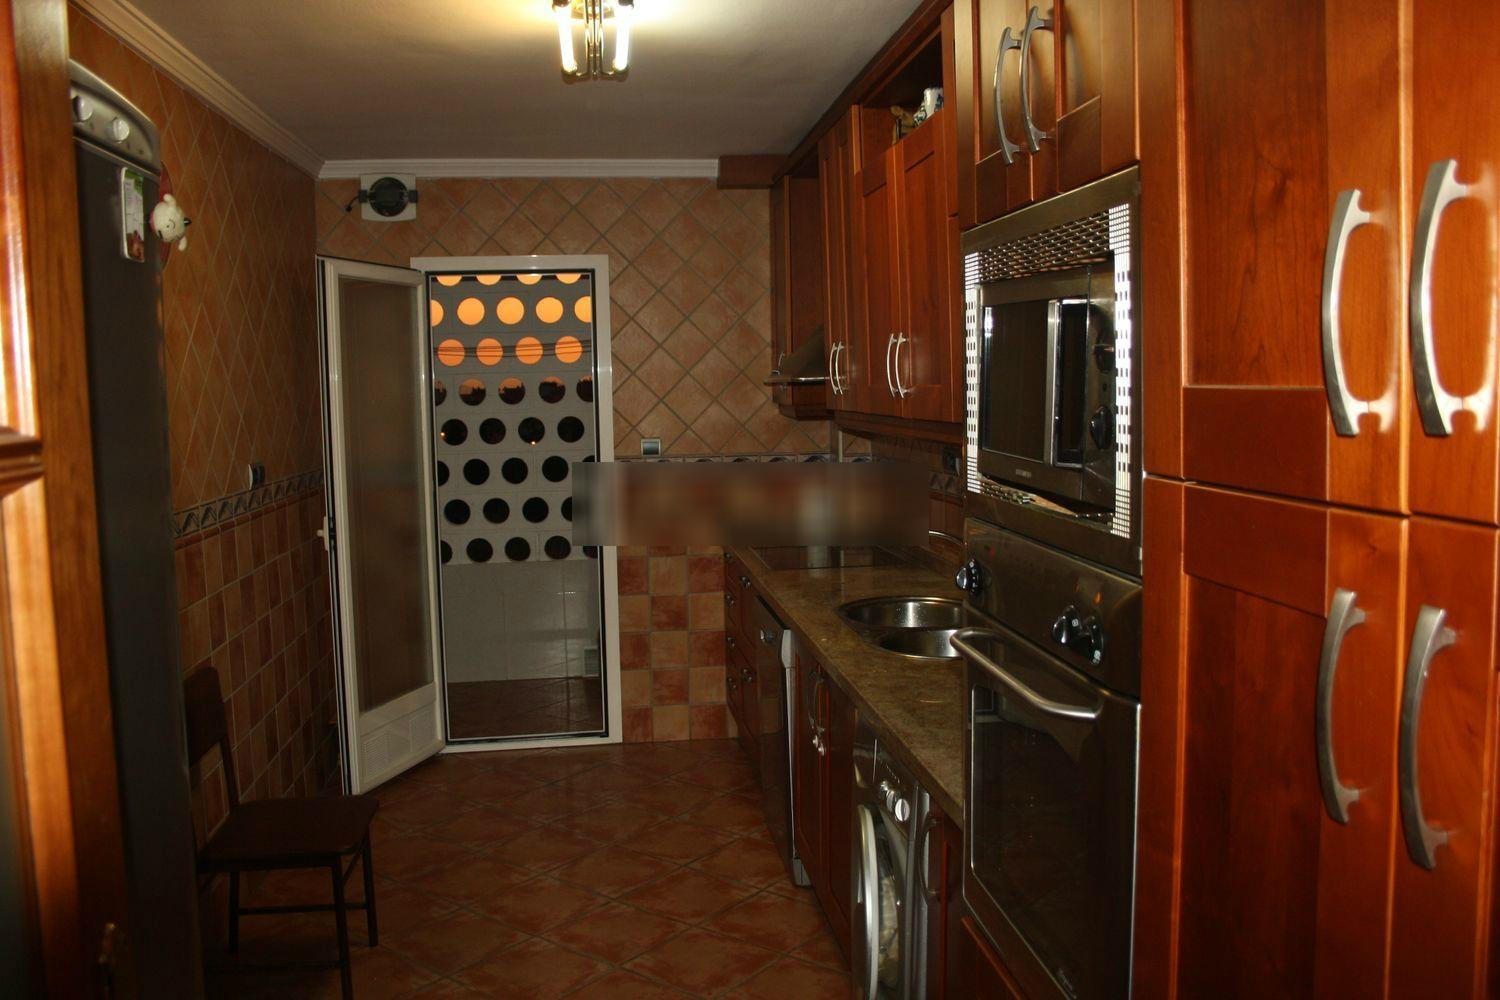 Flat for rent in Cartuja (Granada), 675 €/month